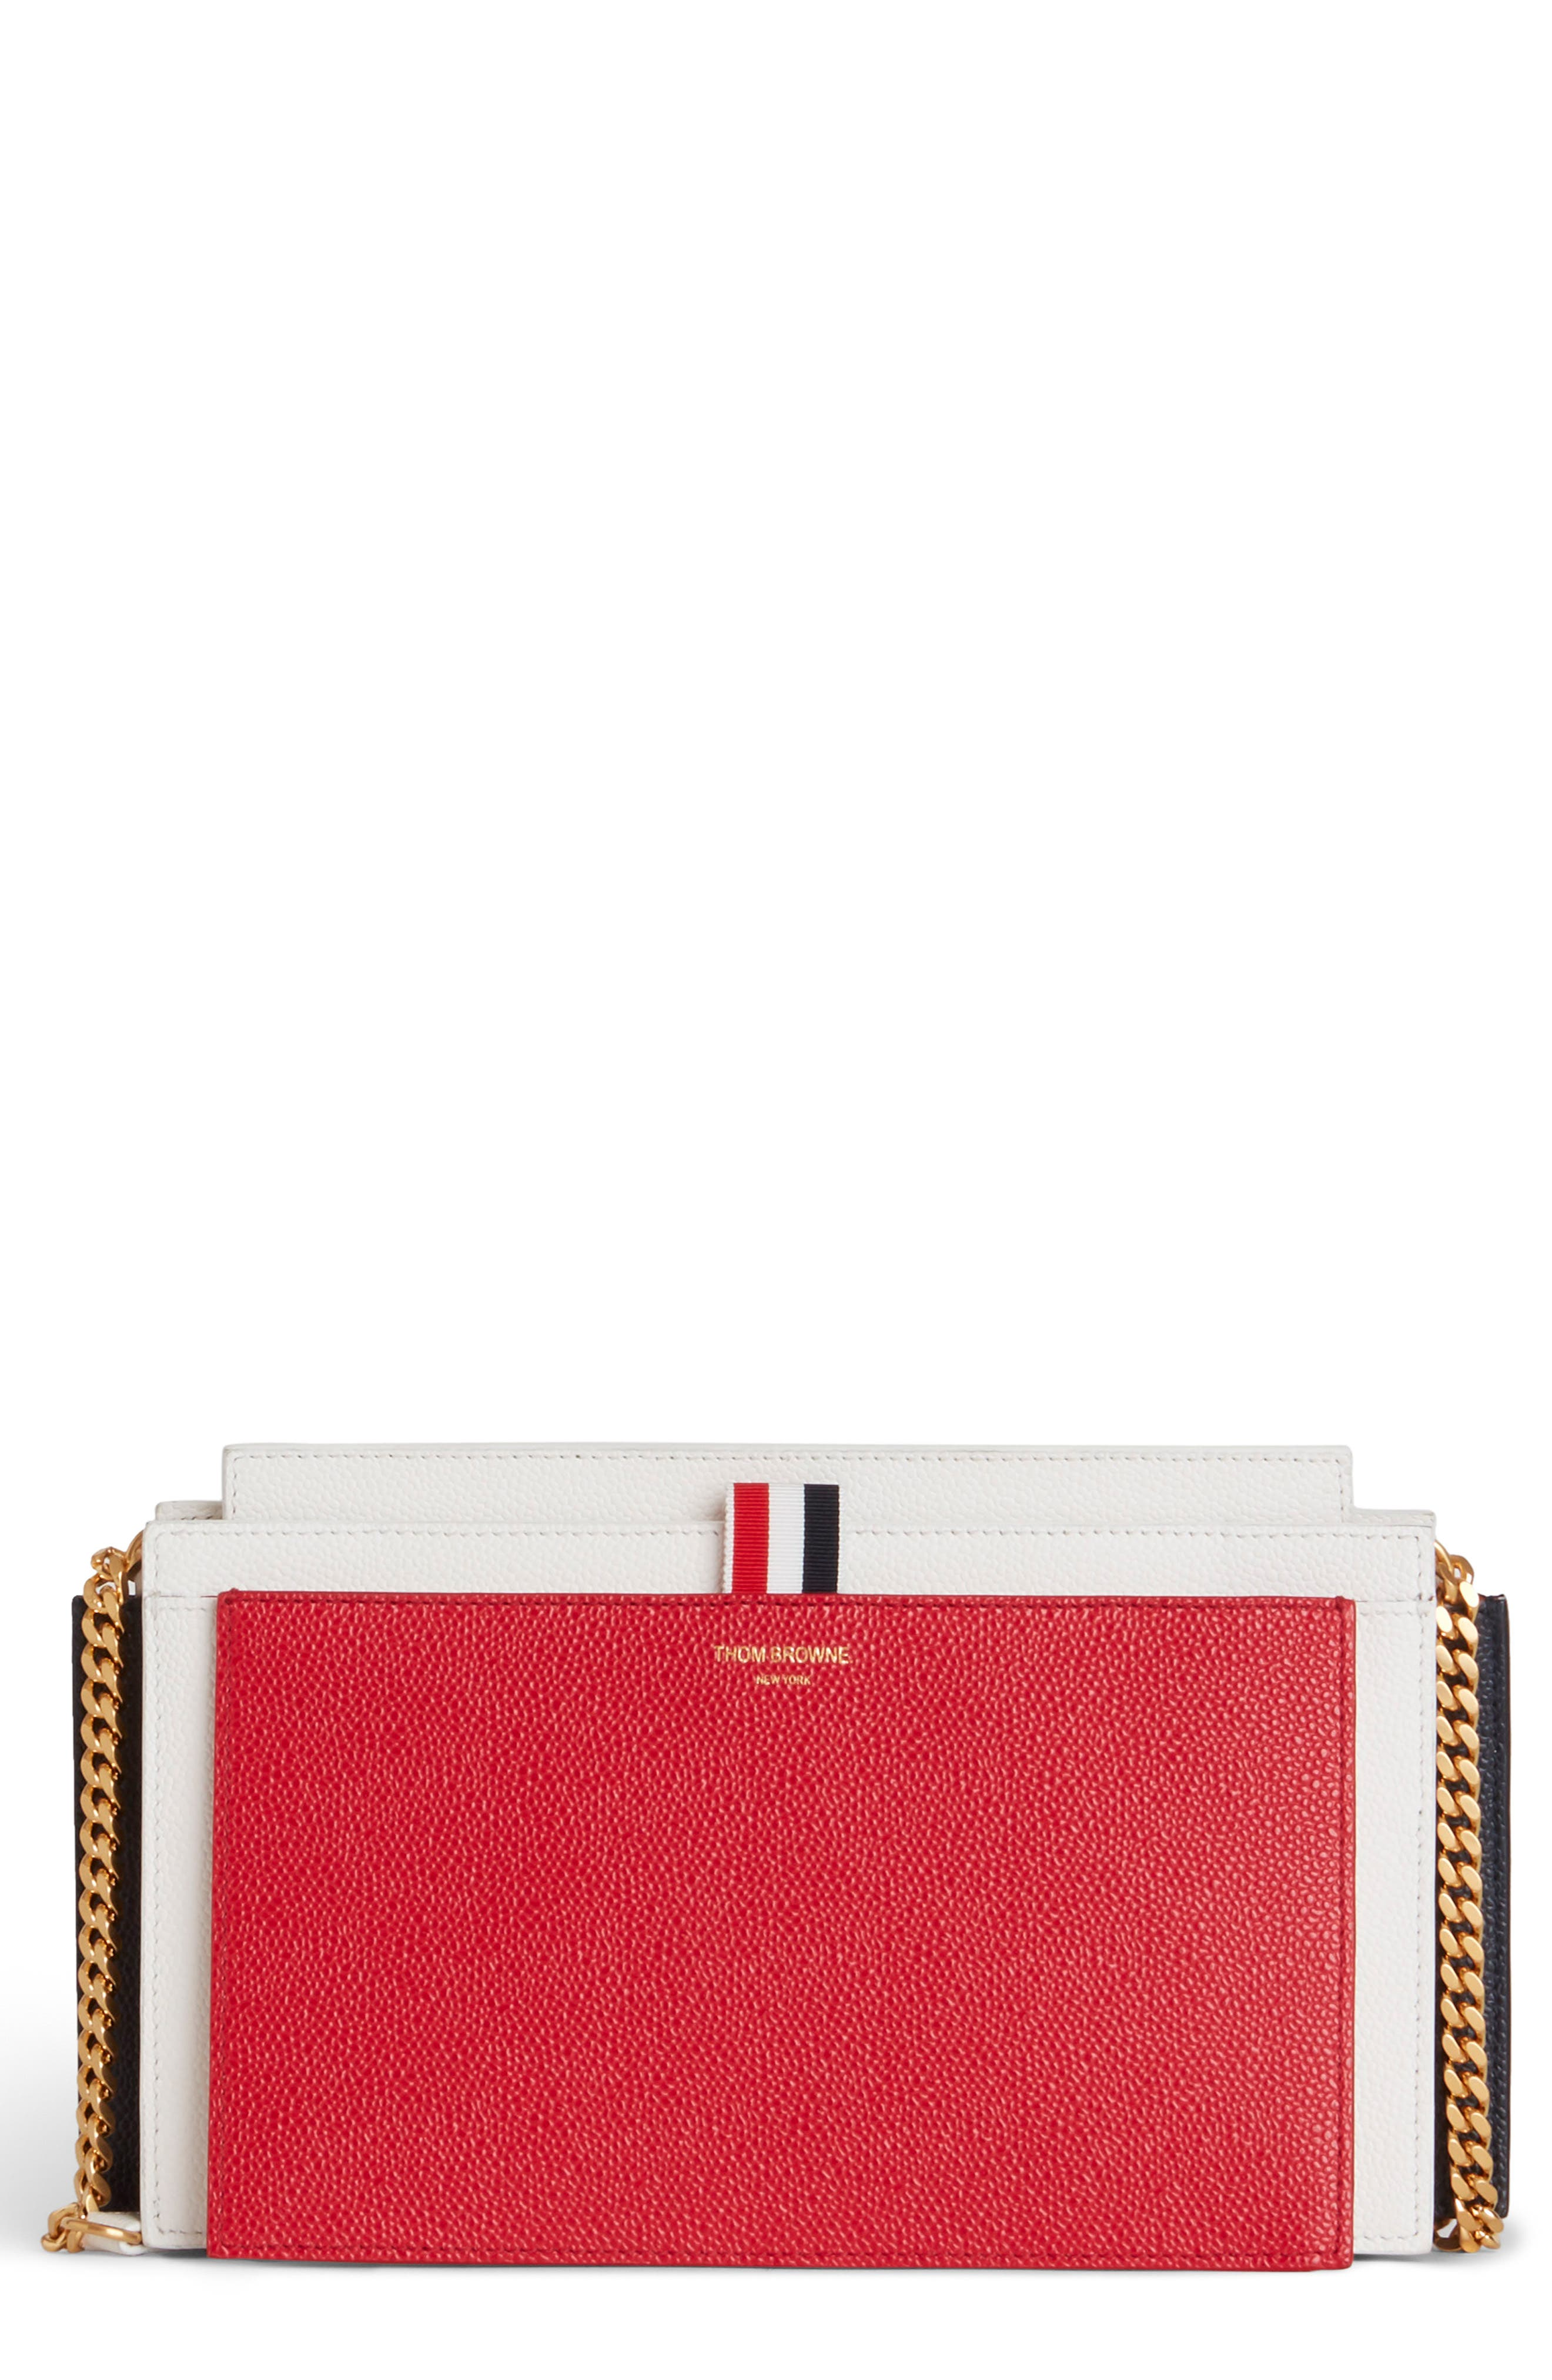 THOM BROWNE, Colorblock Leather Accordion Clutch, Main thumbnail 1, color, RED/ WHITE/ BLACK